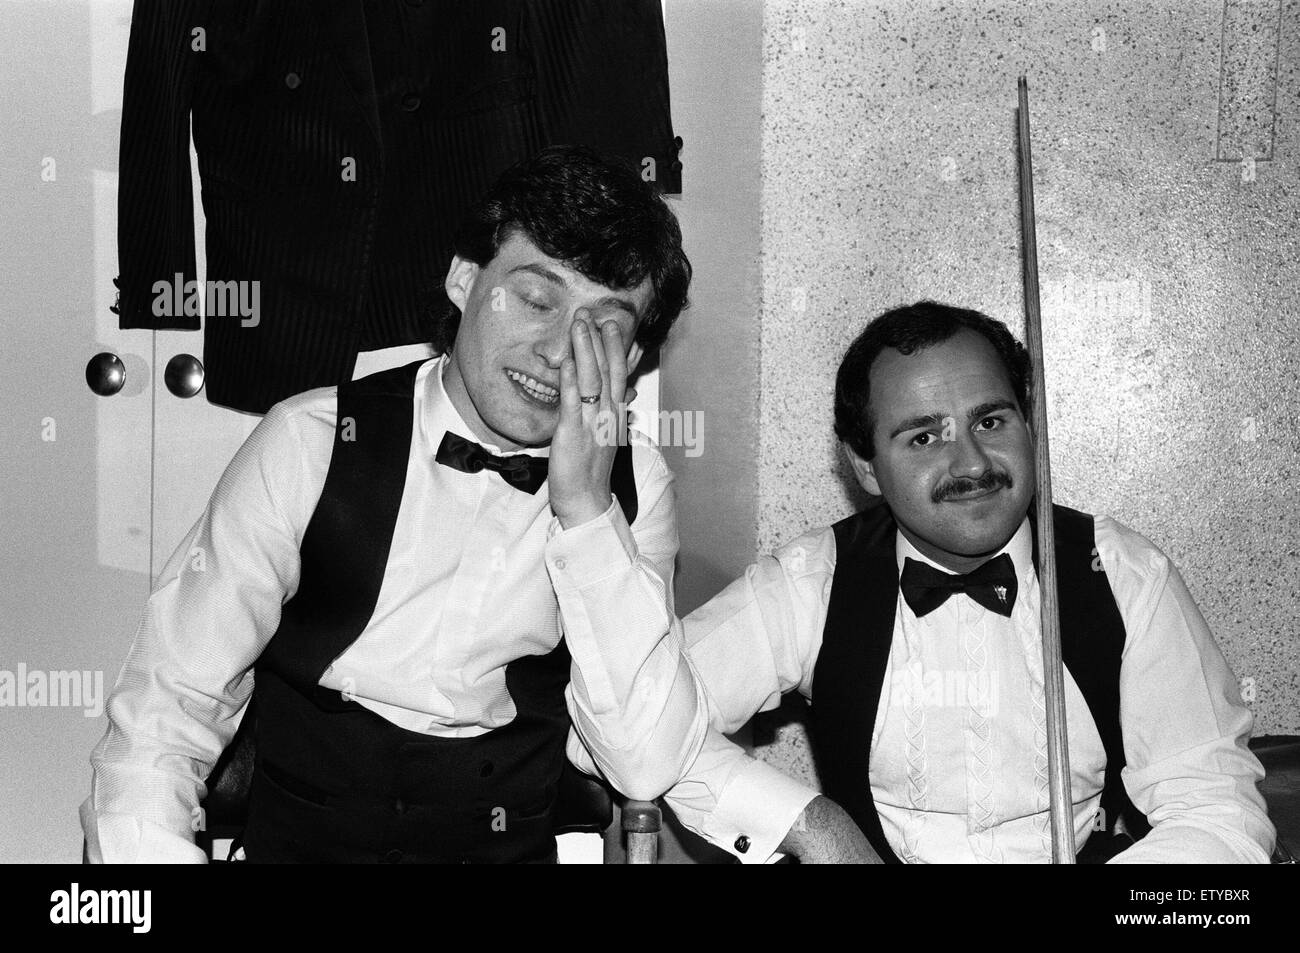 Snooker player jimmy whiteshares a joke with a fellow snooker player in the dressing room